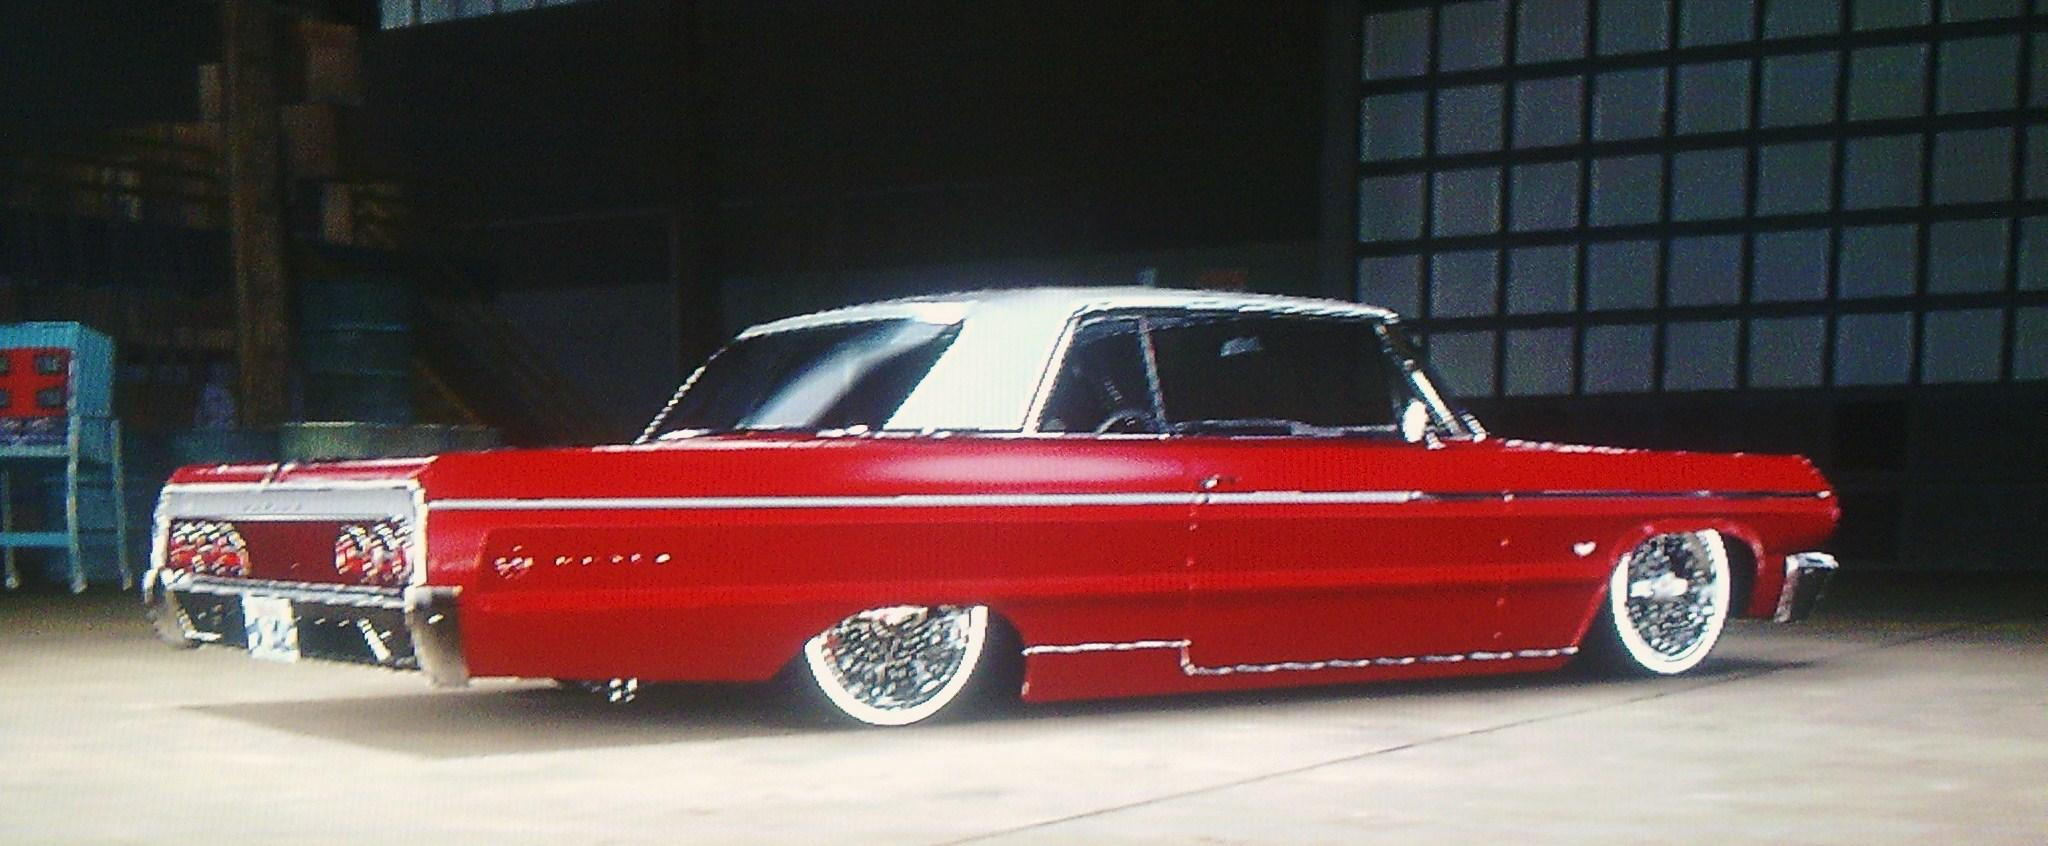 Travdaddy207 1964 Chevrolet Impala Specs Photos